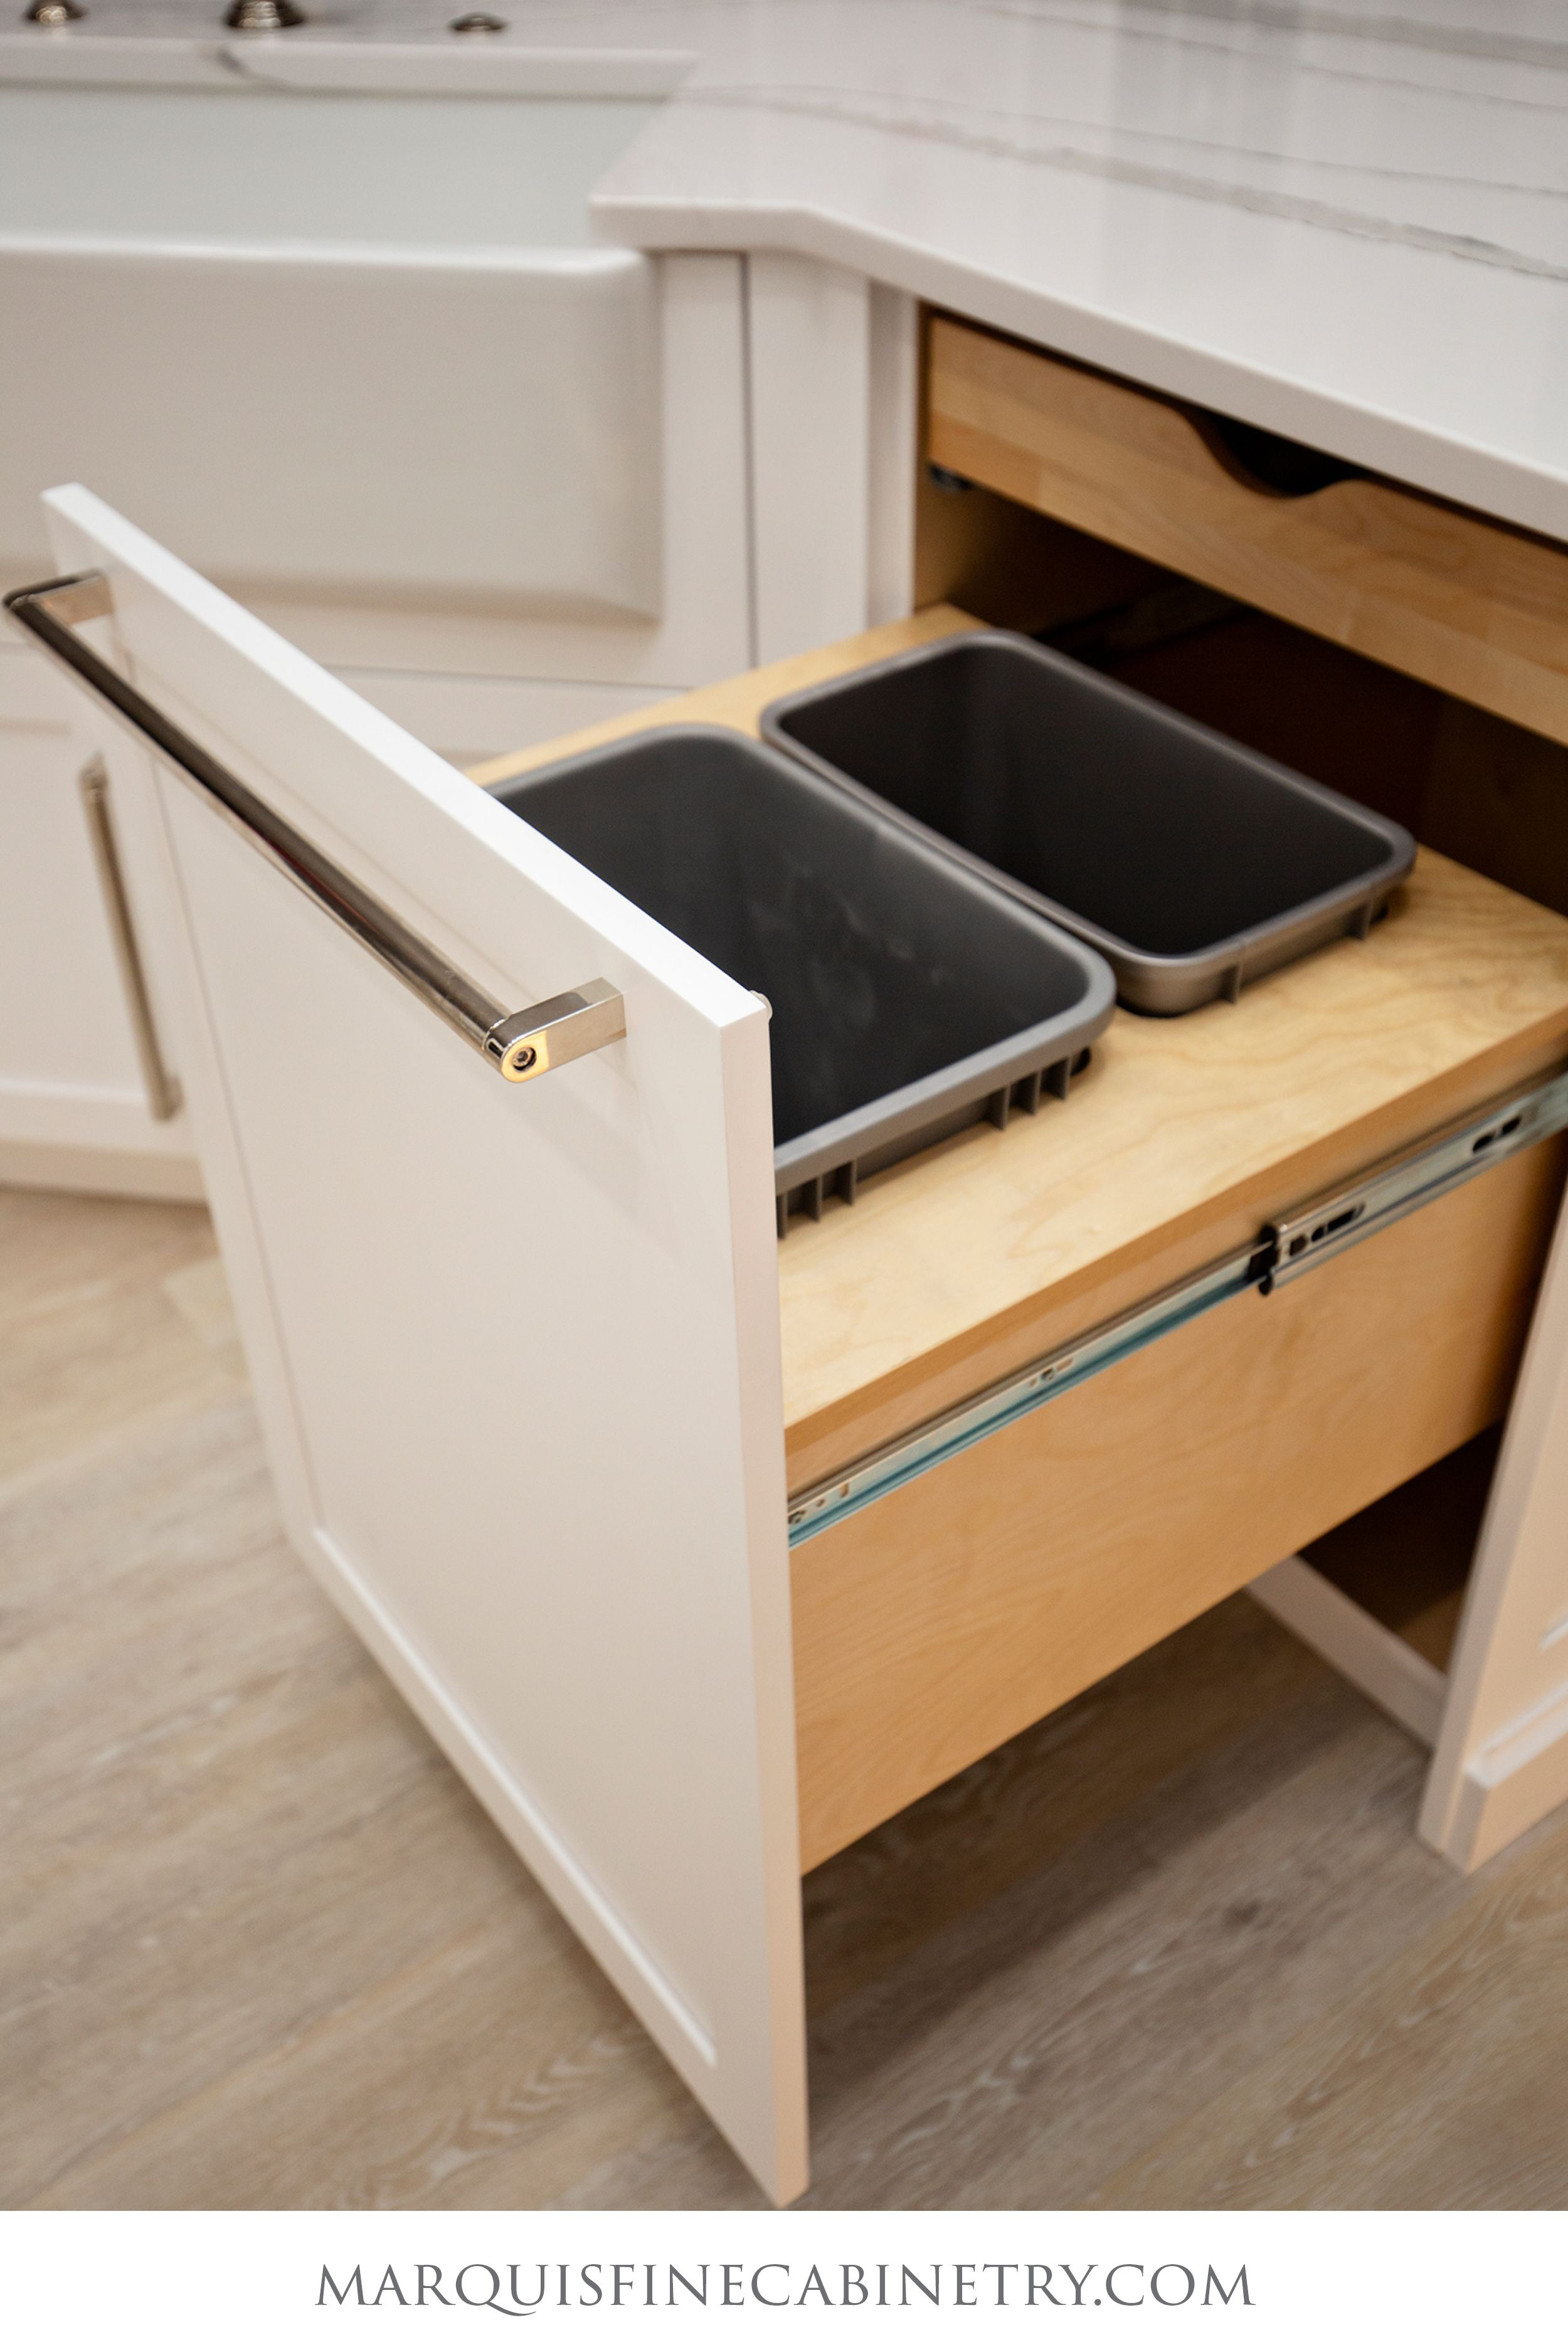 Classico M1236 Trash Bay Pull Out In 2021 New Kitchen Inspiration Cabinetry Design Kitchen Design